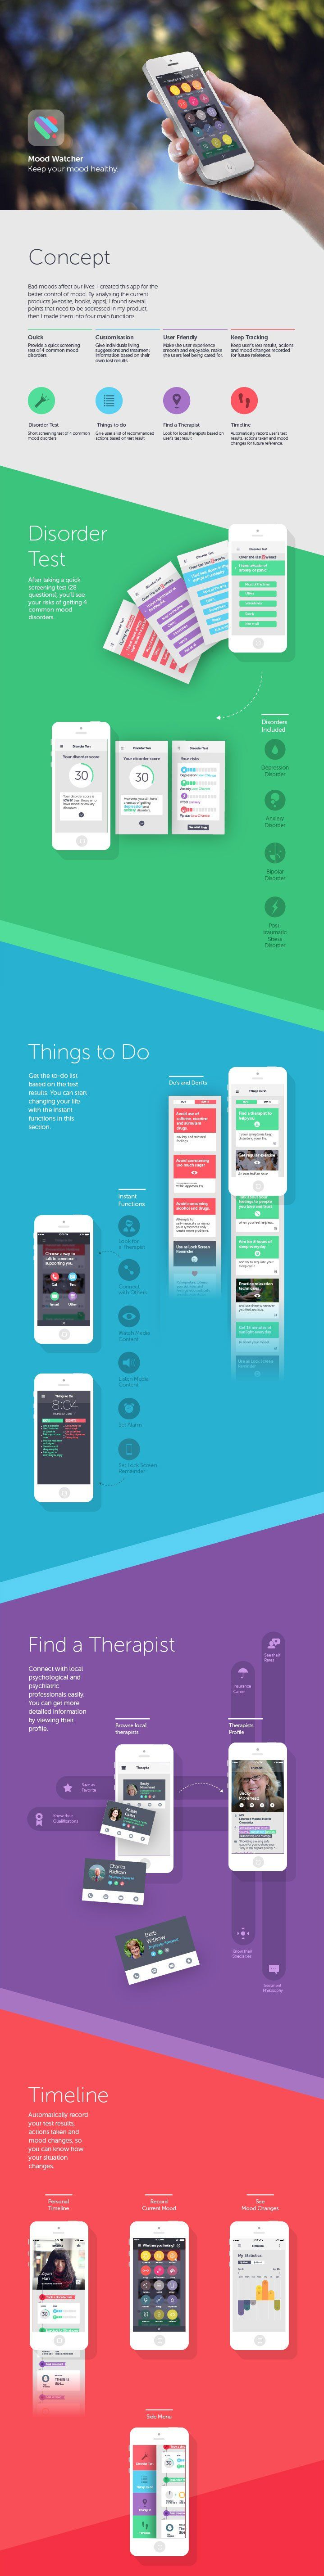 Daily Mobile UI Design Inspiration #293